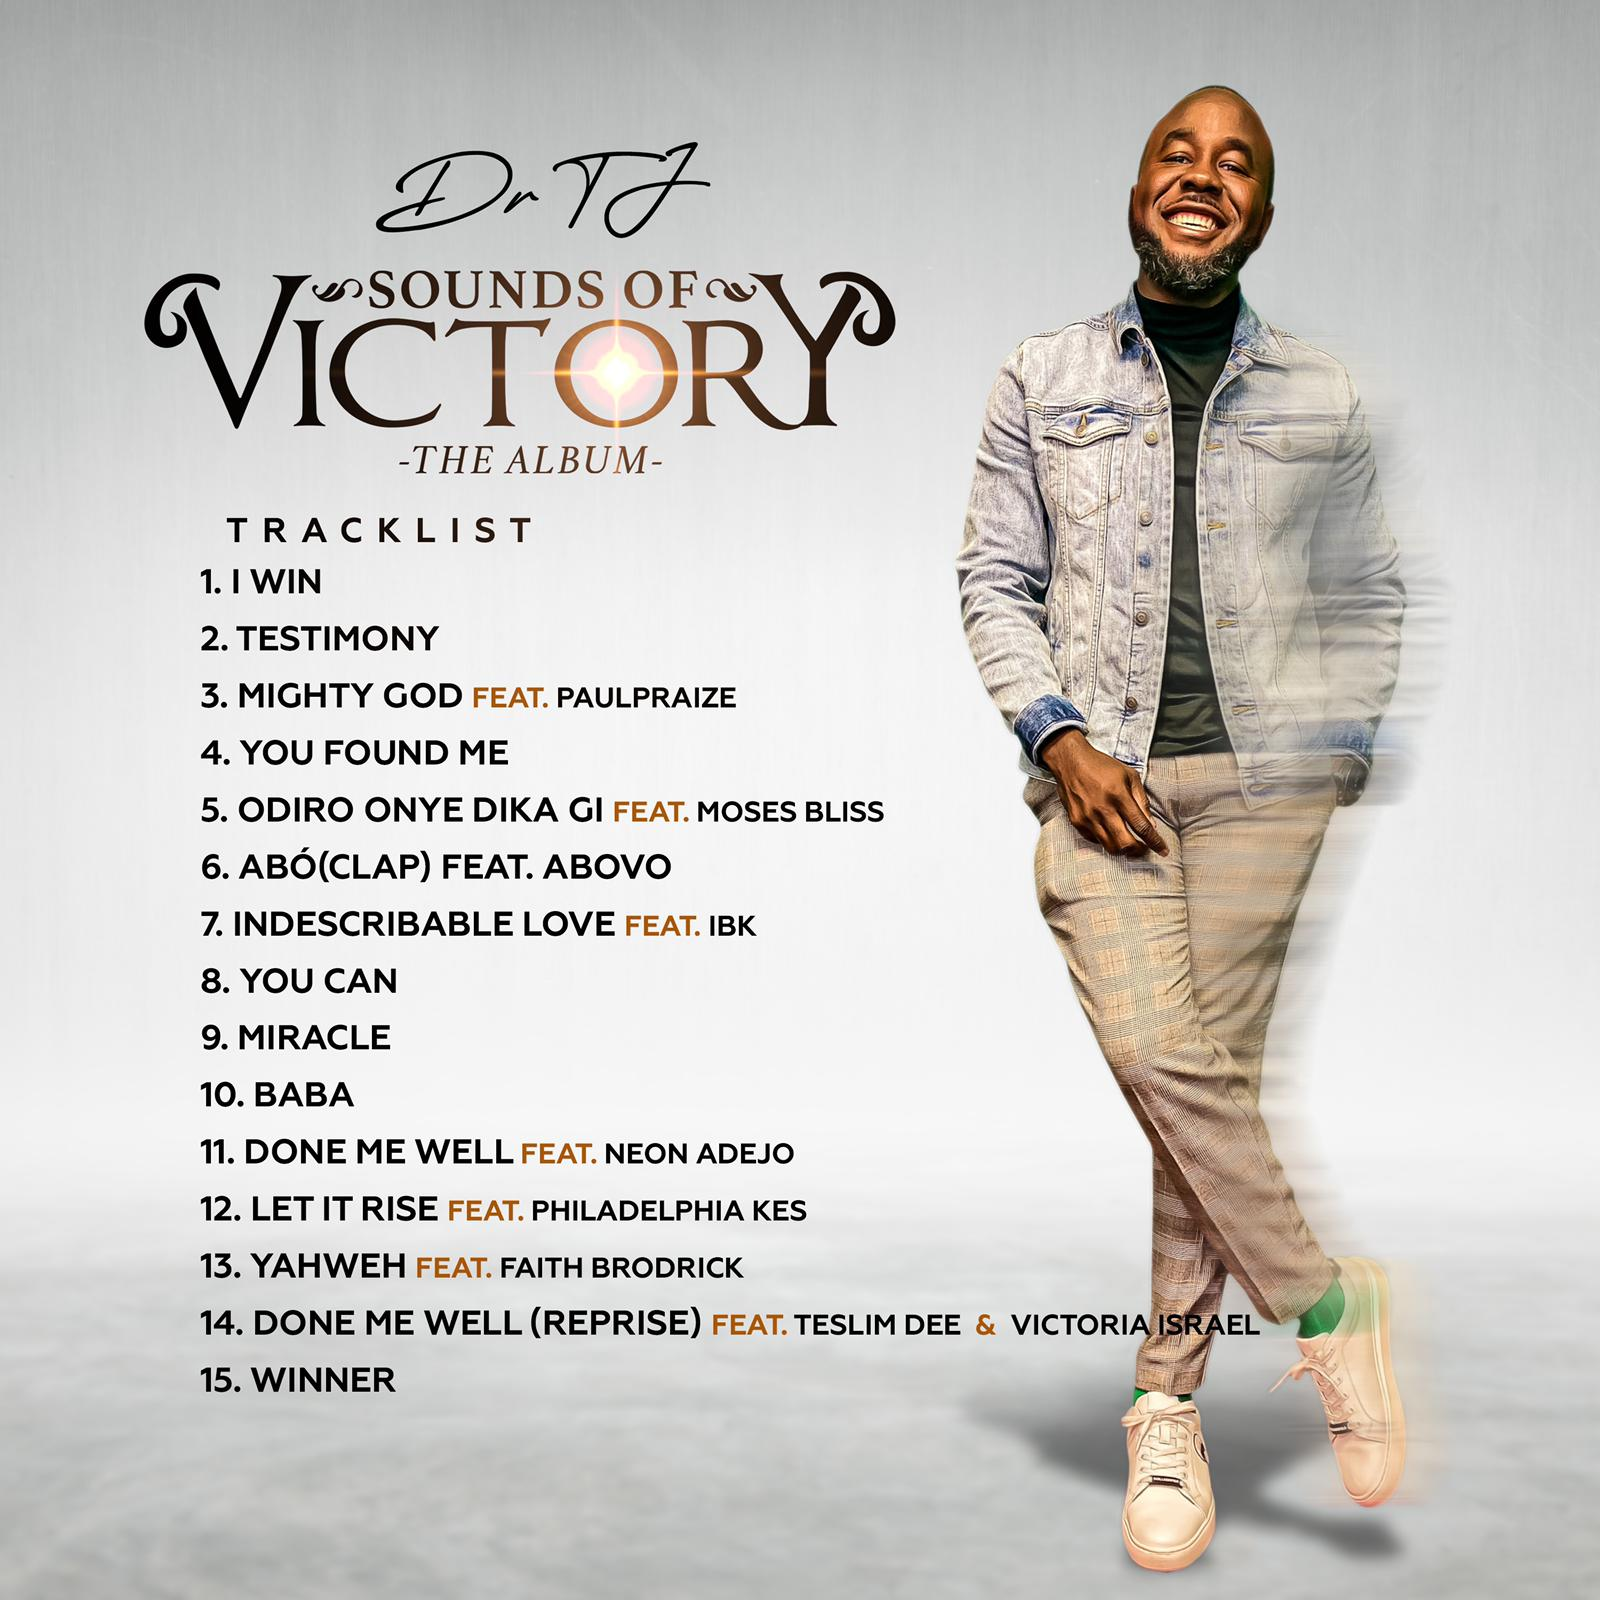 Dr. TJ - Sounds Of Victory